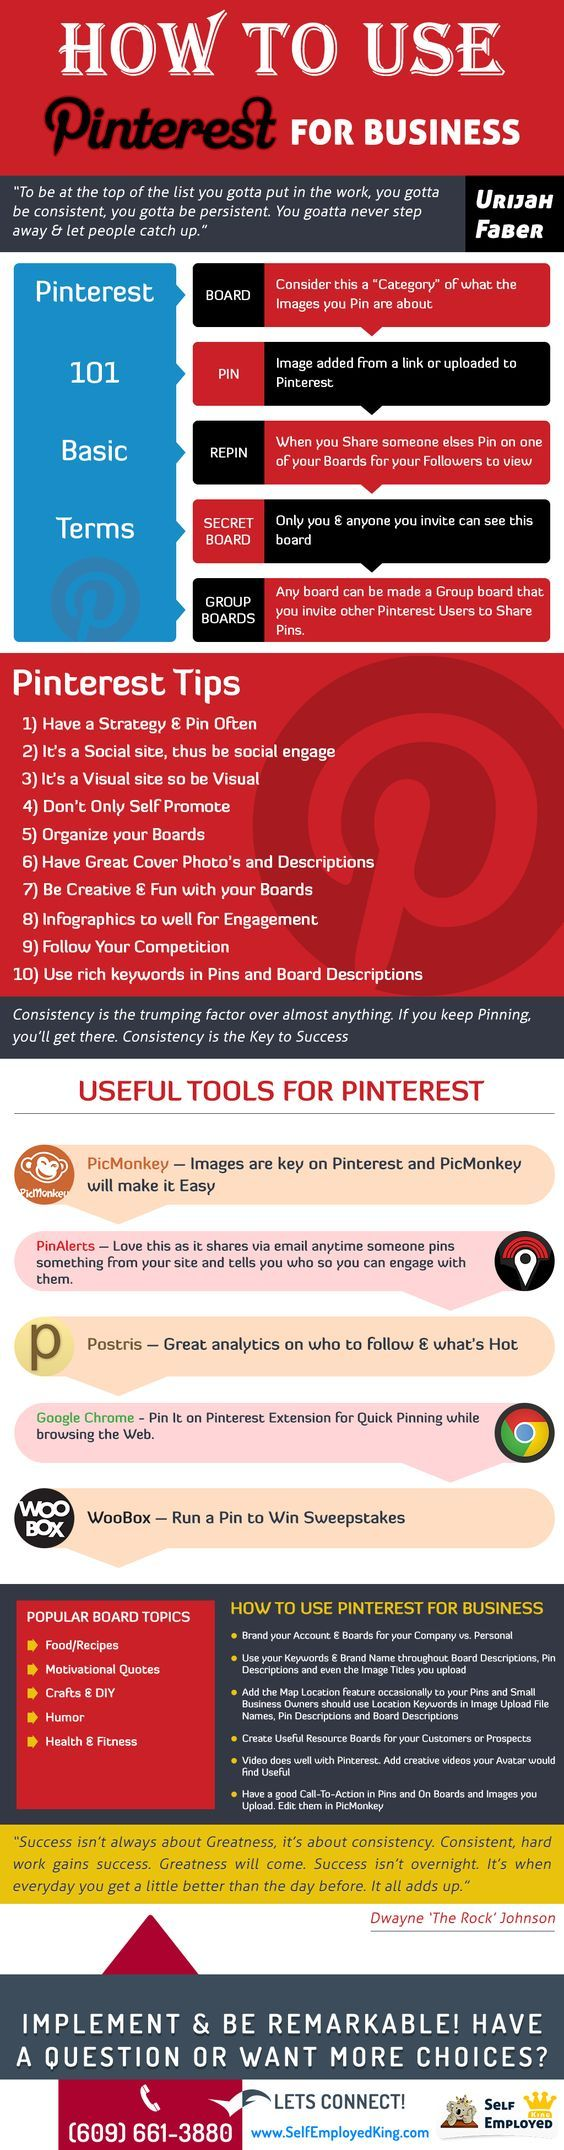 how to use #pinterest for business for business http://www.smartseoservice.com/convert-web-traffic-into-sales-or-leads/